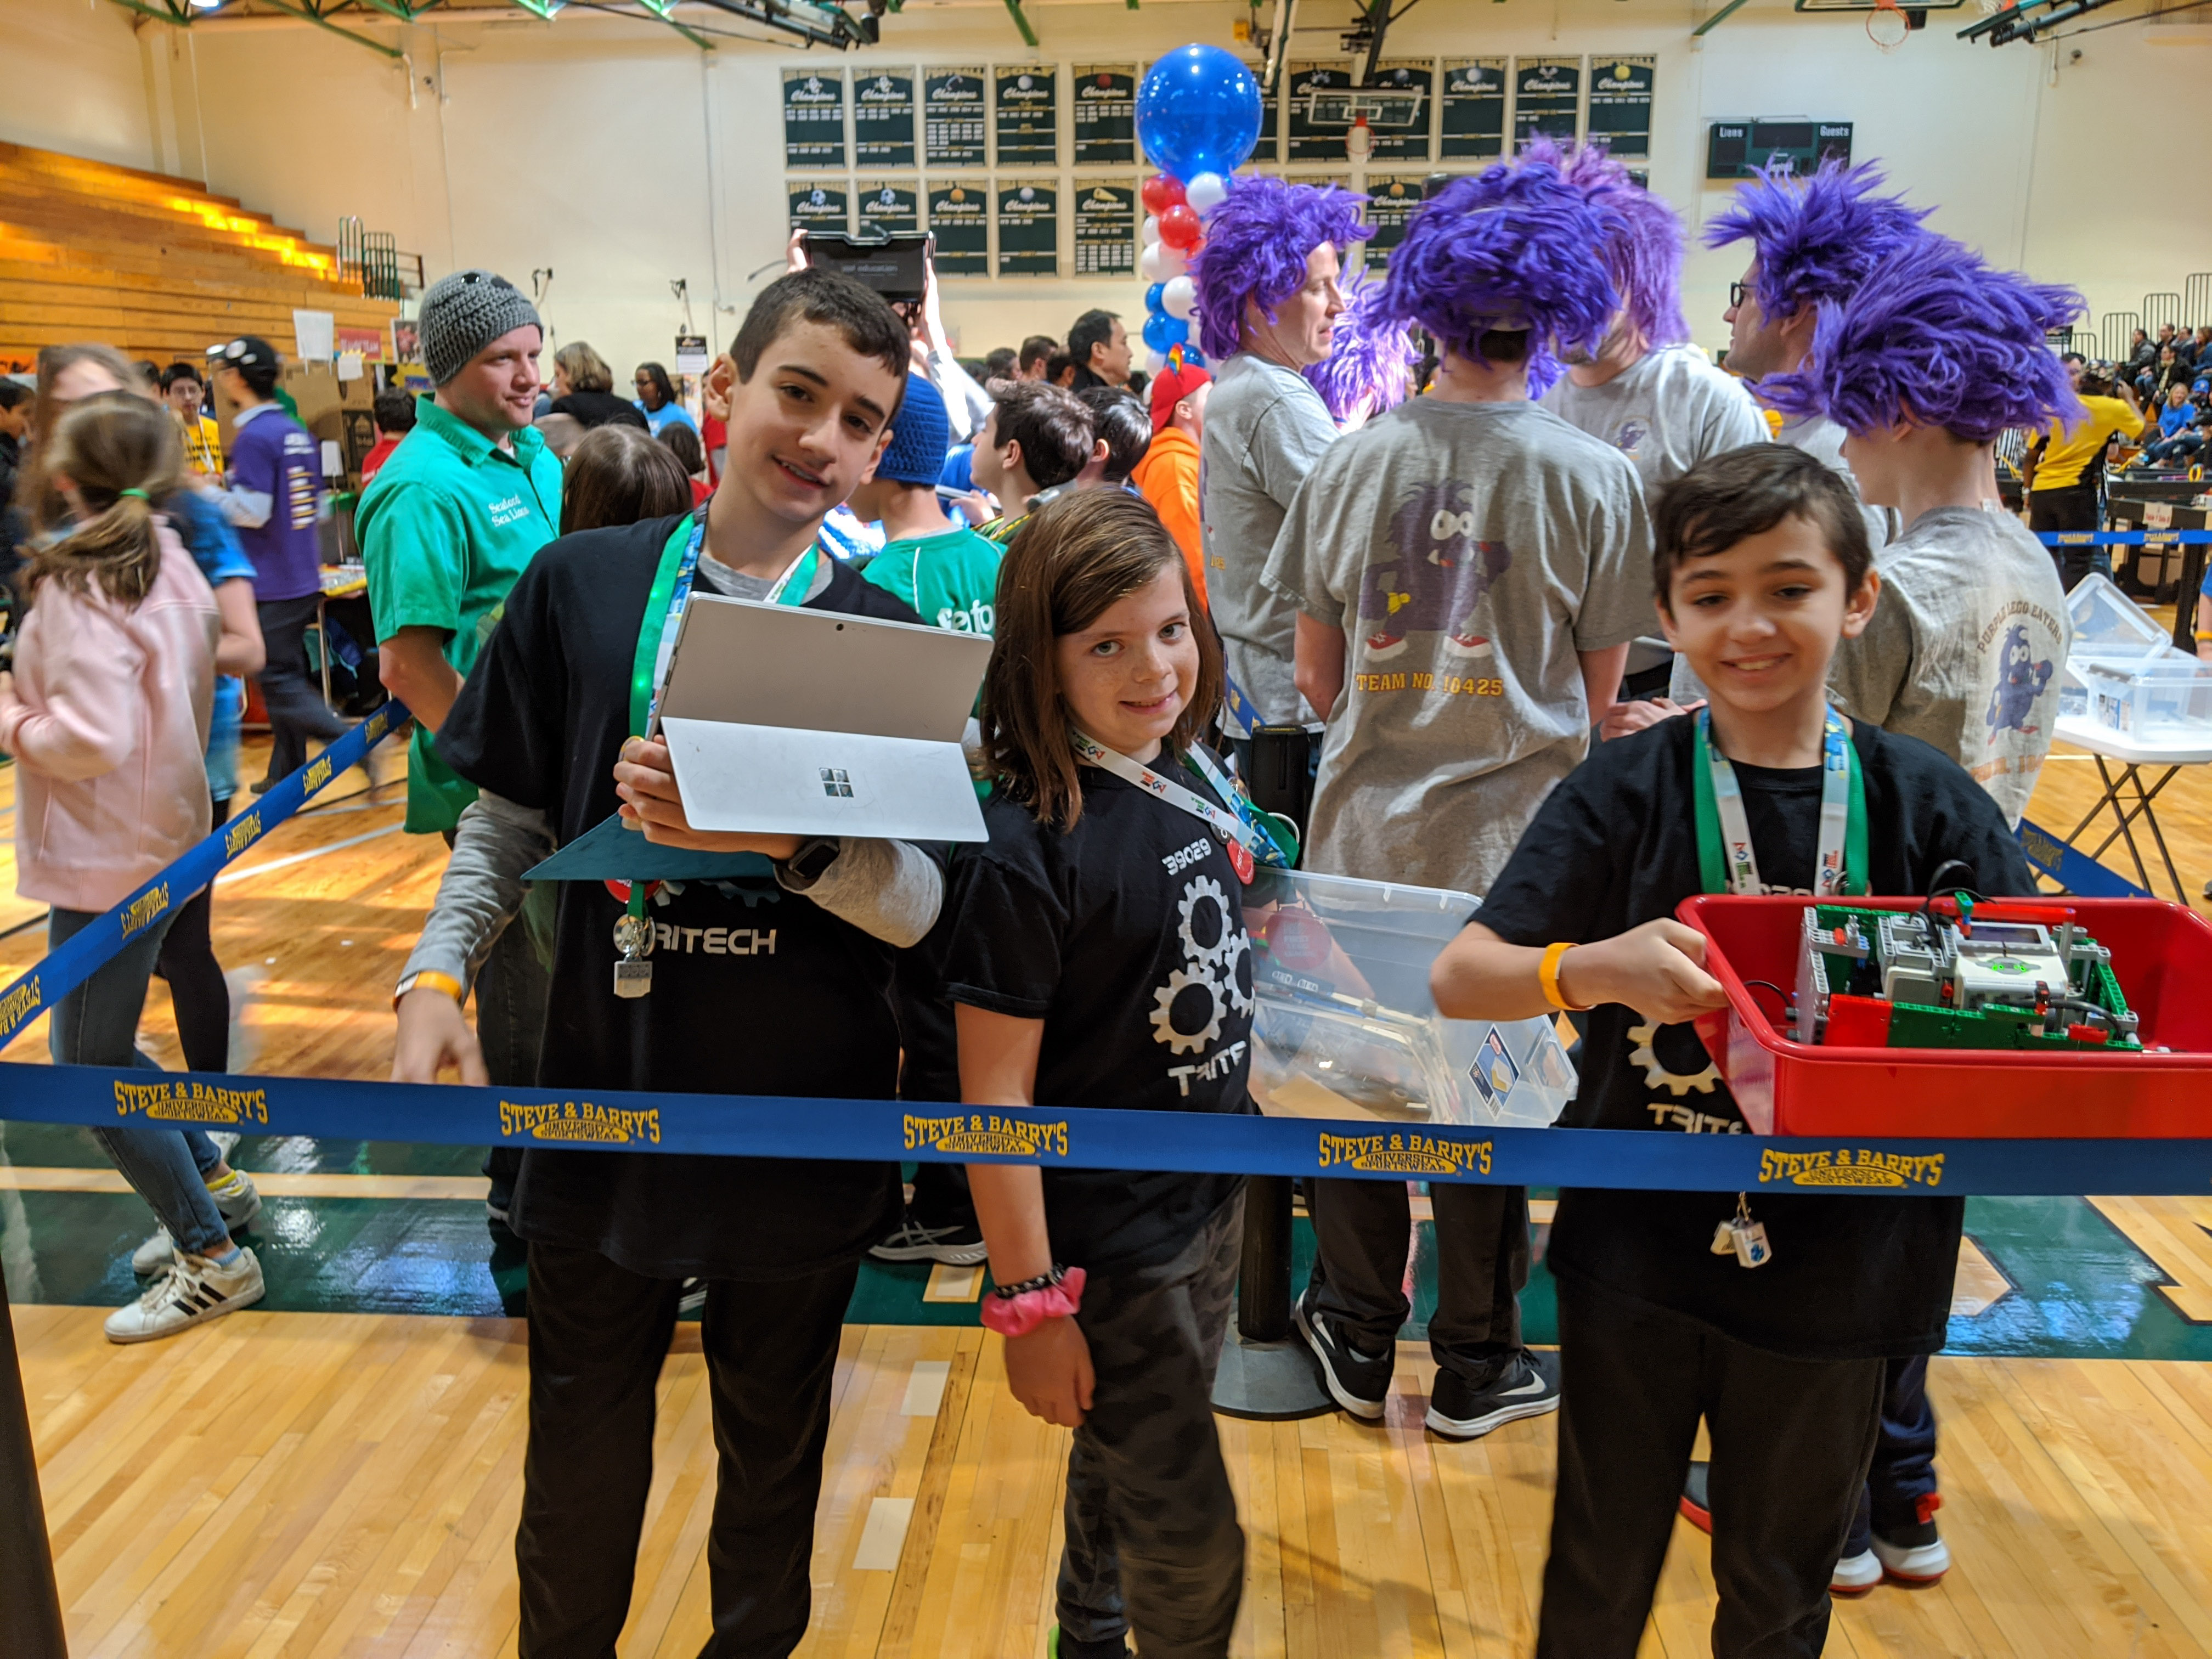 Students from Otsego And West Hollow Win Innovative Solution Award At LI Regional FIRST LEGO League Championship